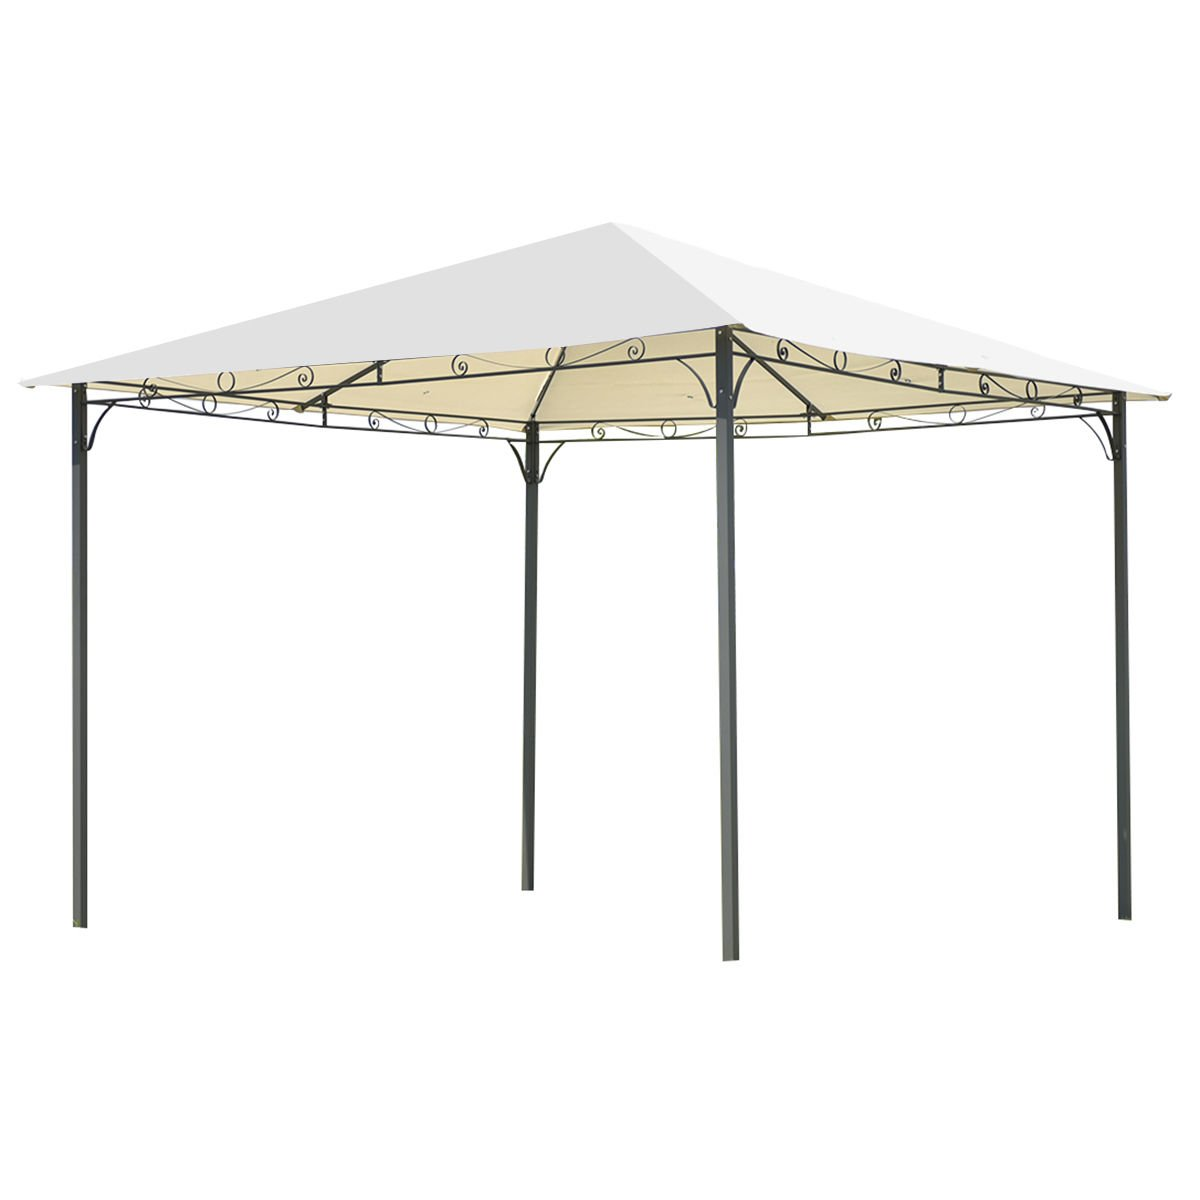 Tangkula 10'x10' Patio Gazebo Canopy Tent Shelter with Cover (Beige)